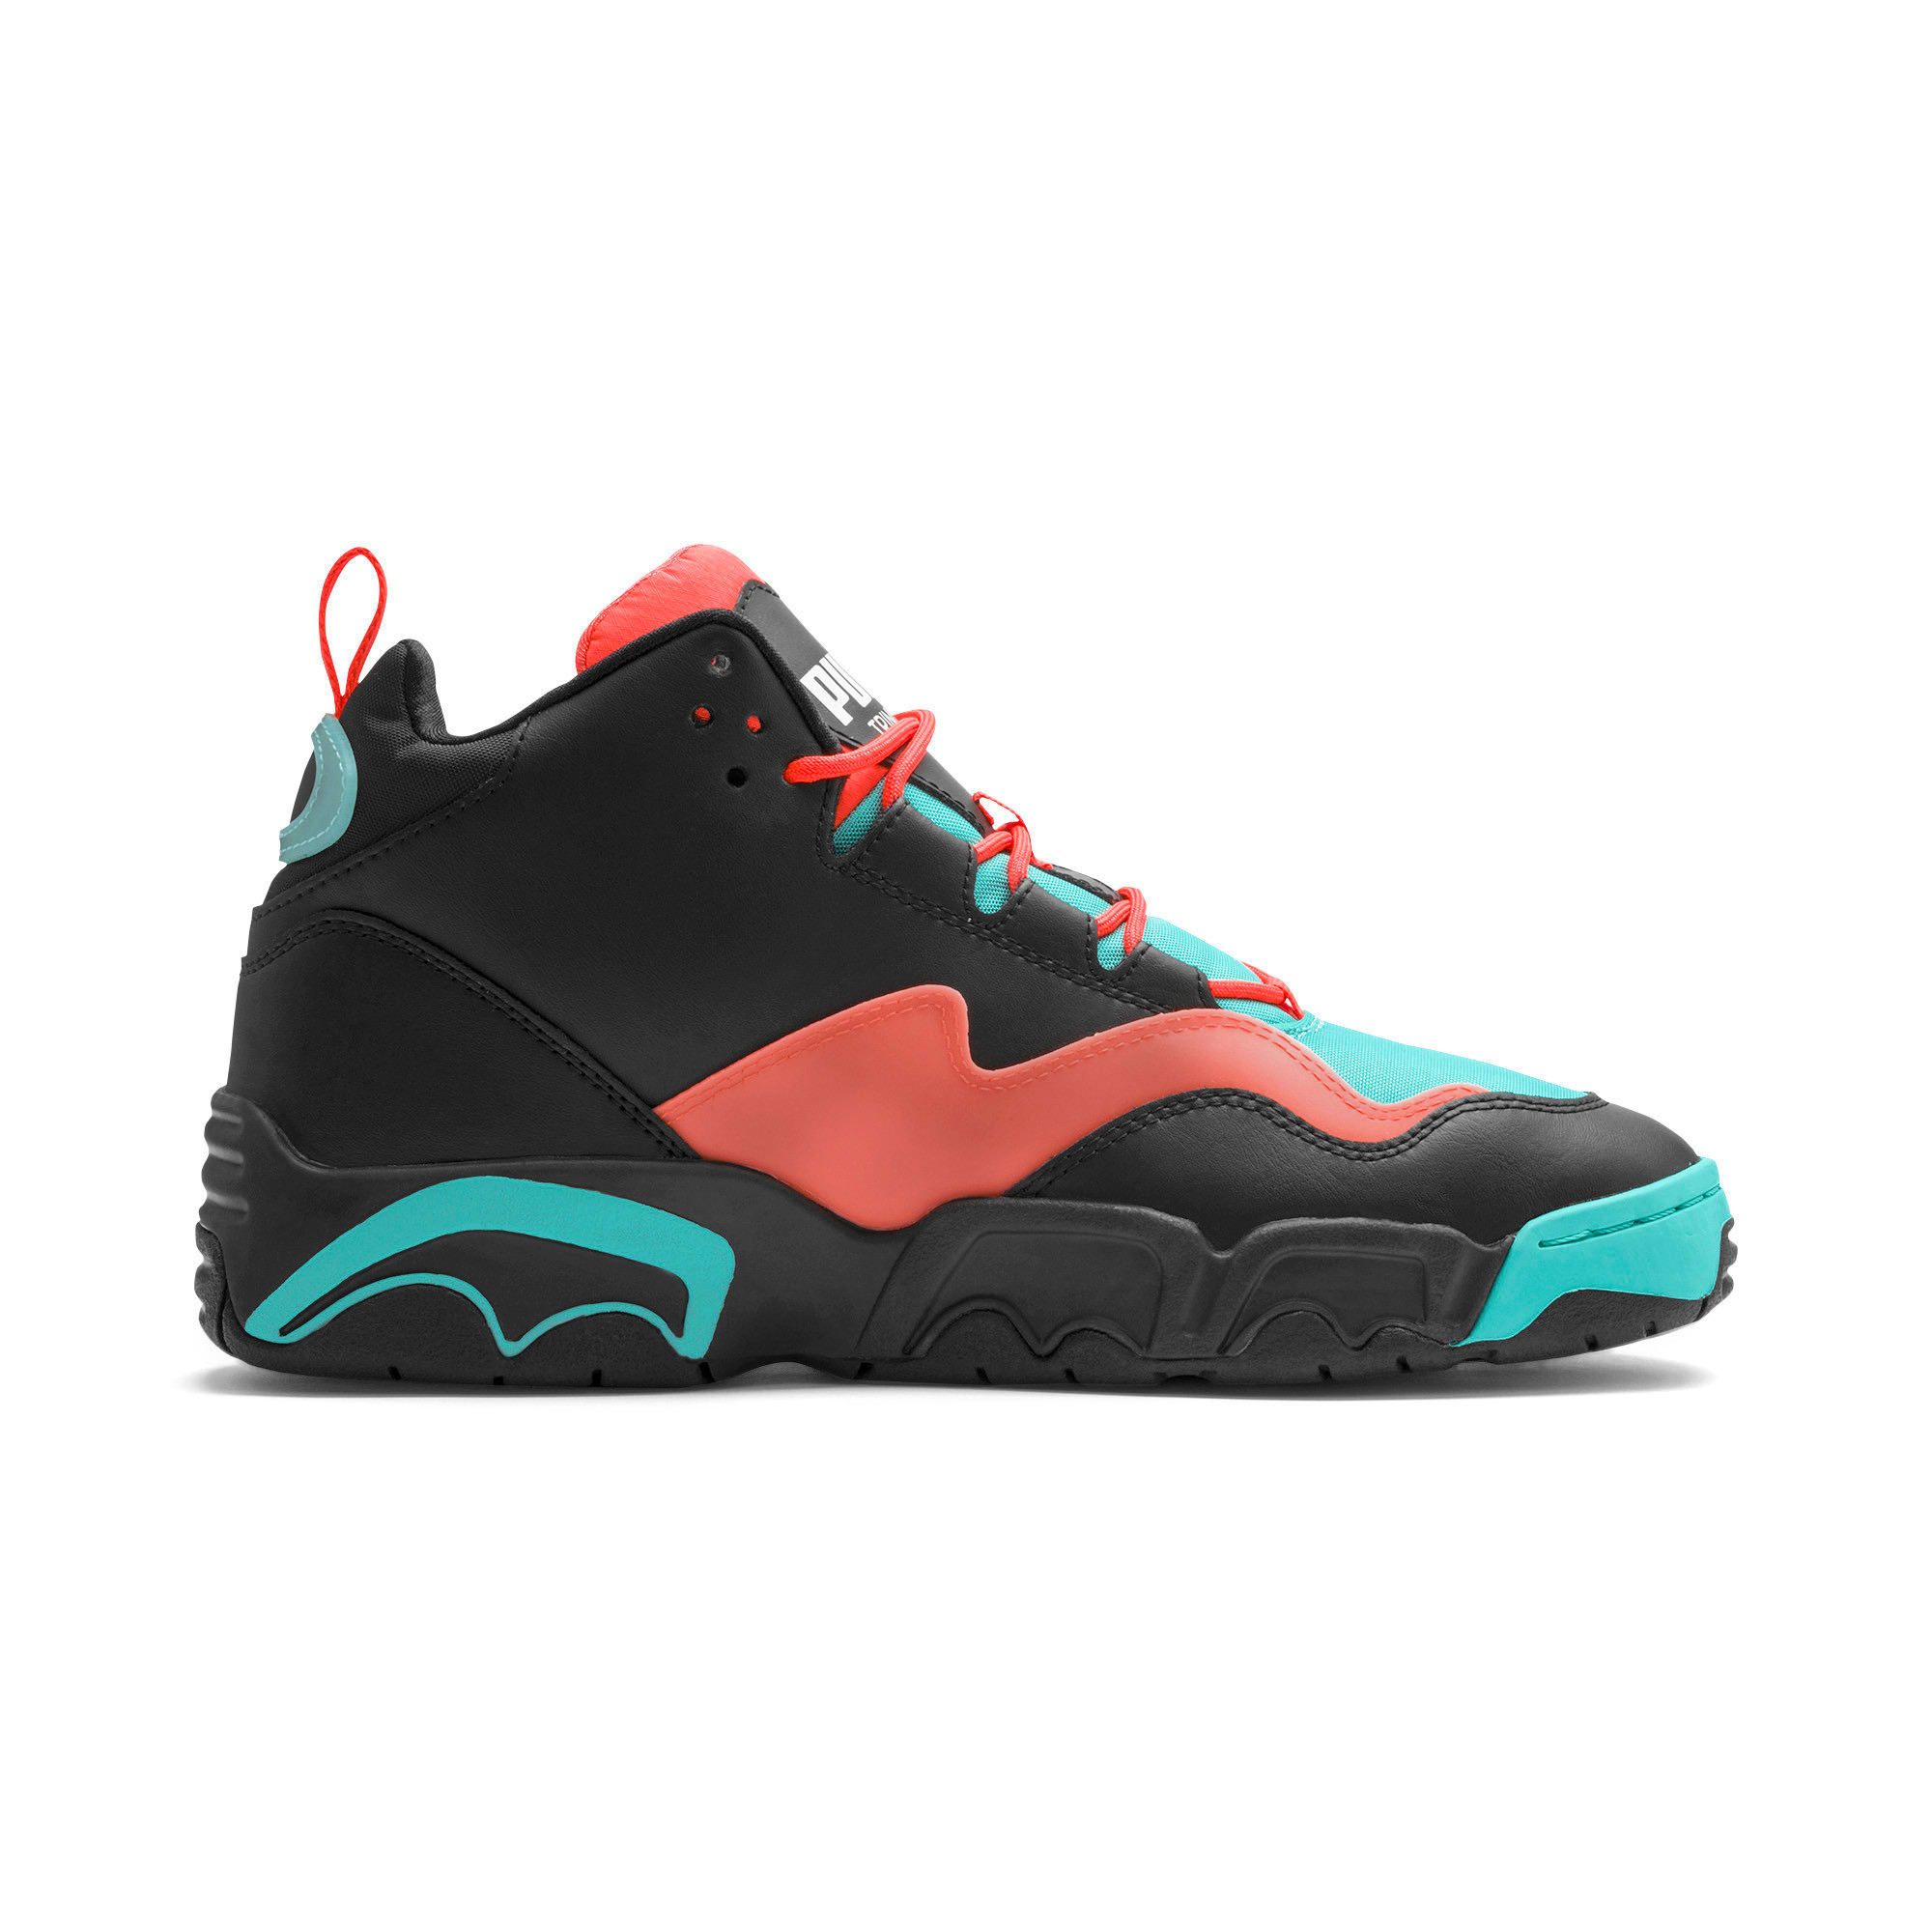 Thumbnail 7 of Source Mid Buzzer Trainers, P Blk-Nrgy Red-BlueTurquoise, medium-IND